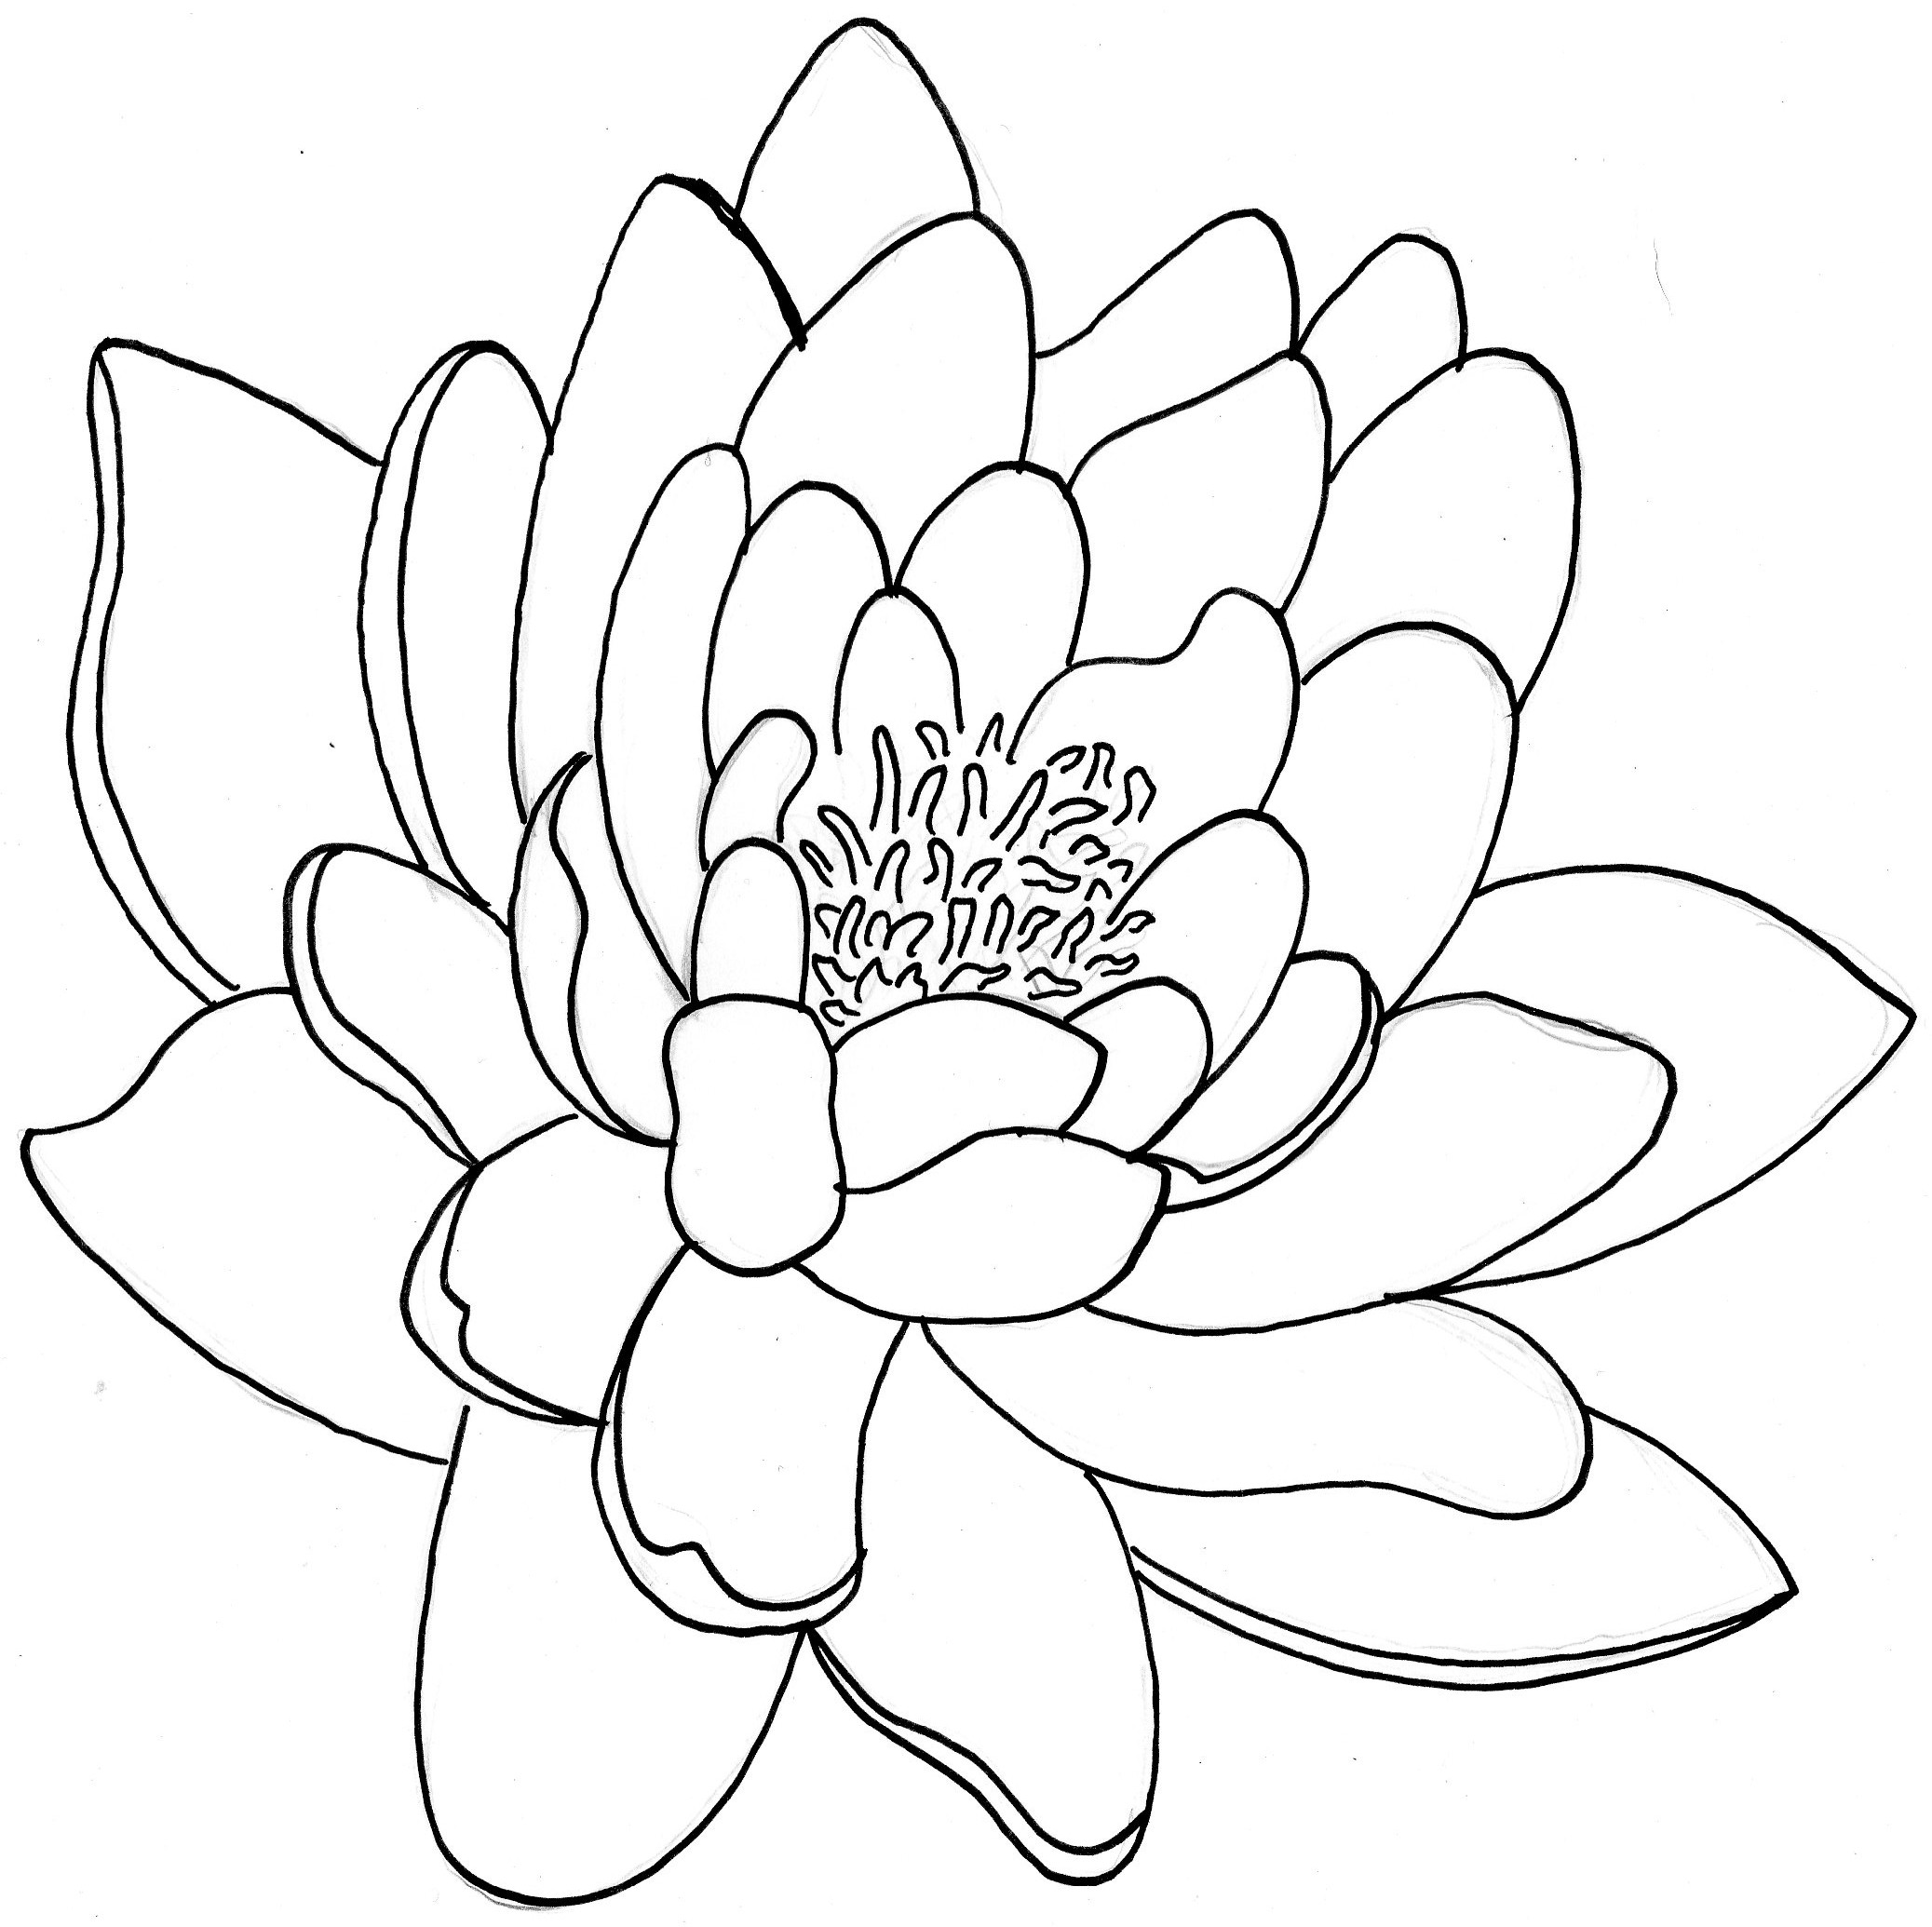 Lotus Flower Line Drawing Vector Free Download : Lotus flower line drawing vector free download